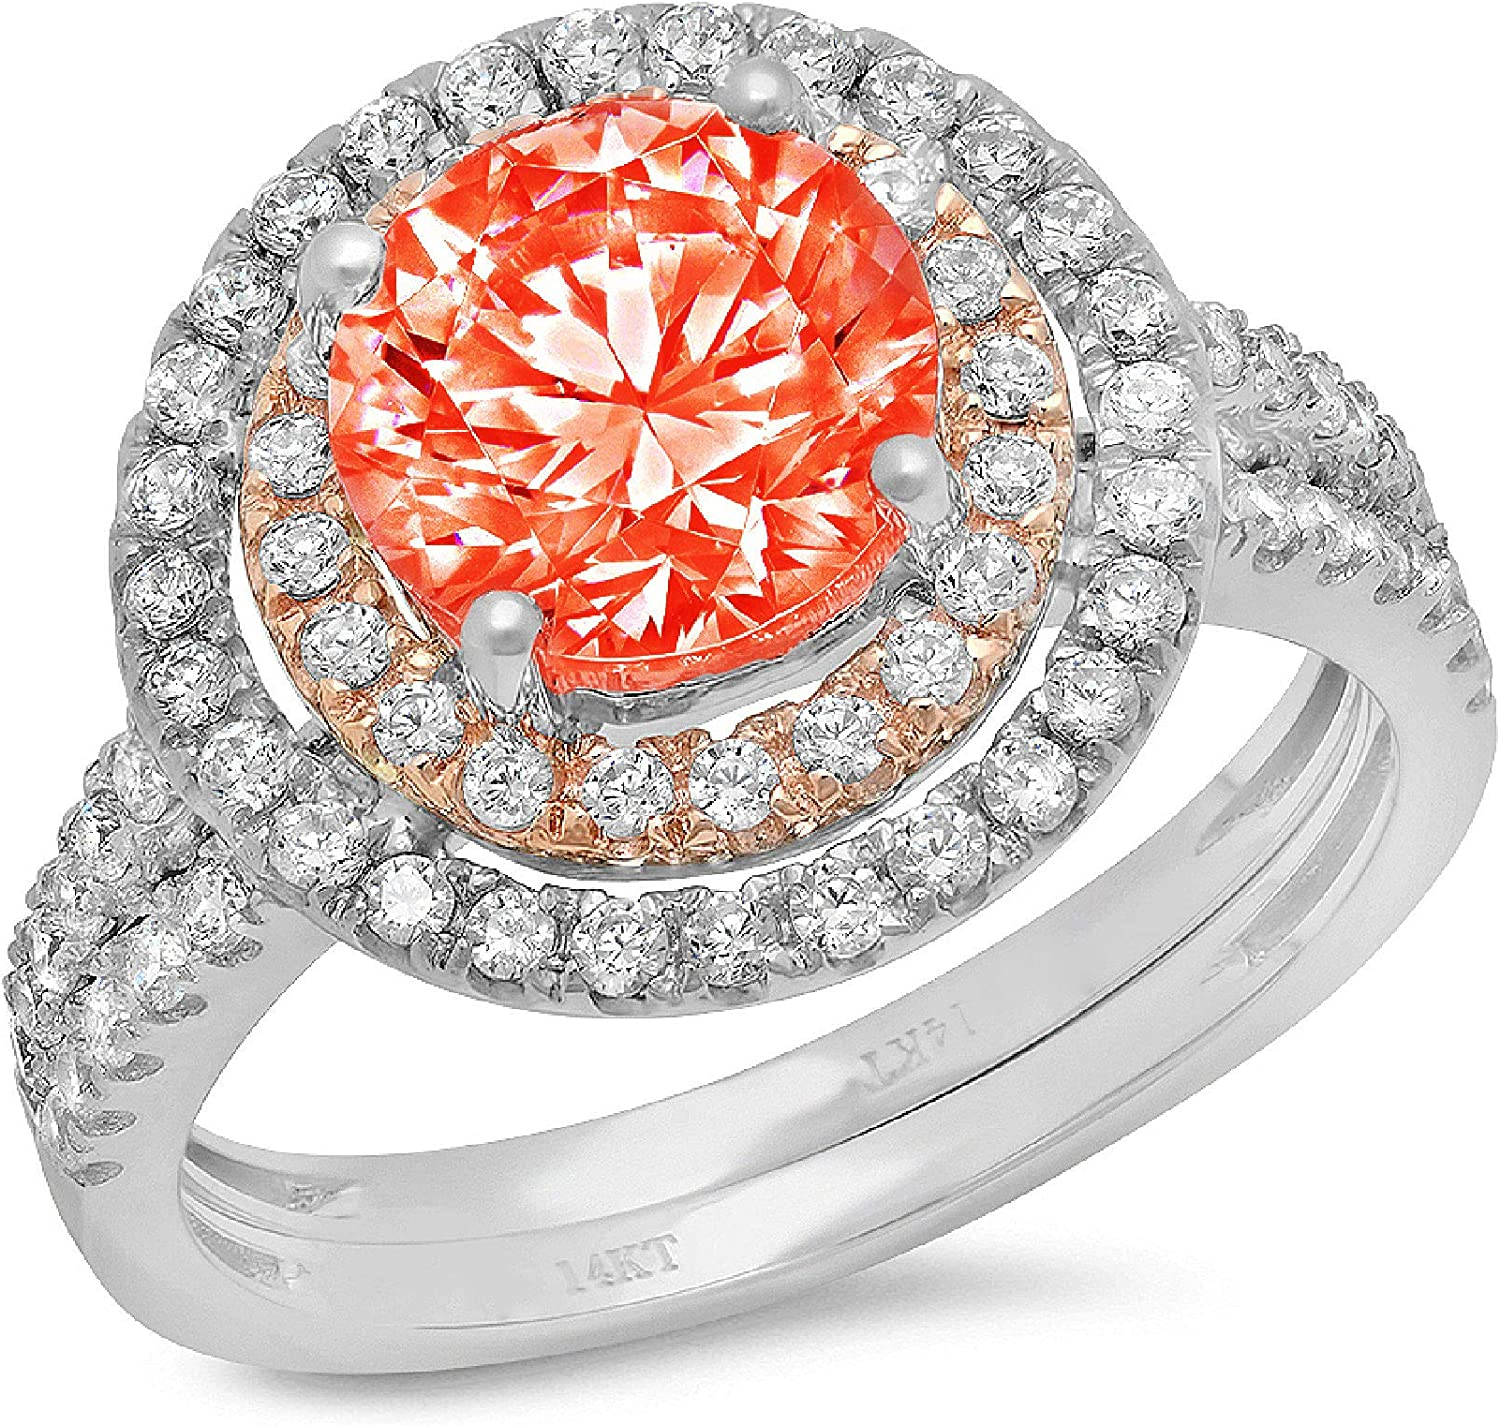 2.89ct Round Cut Halo Pave Red Selling National uniform free shipping Ideal Accent Solitaire VVS1